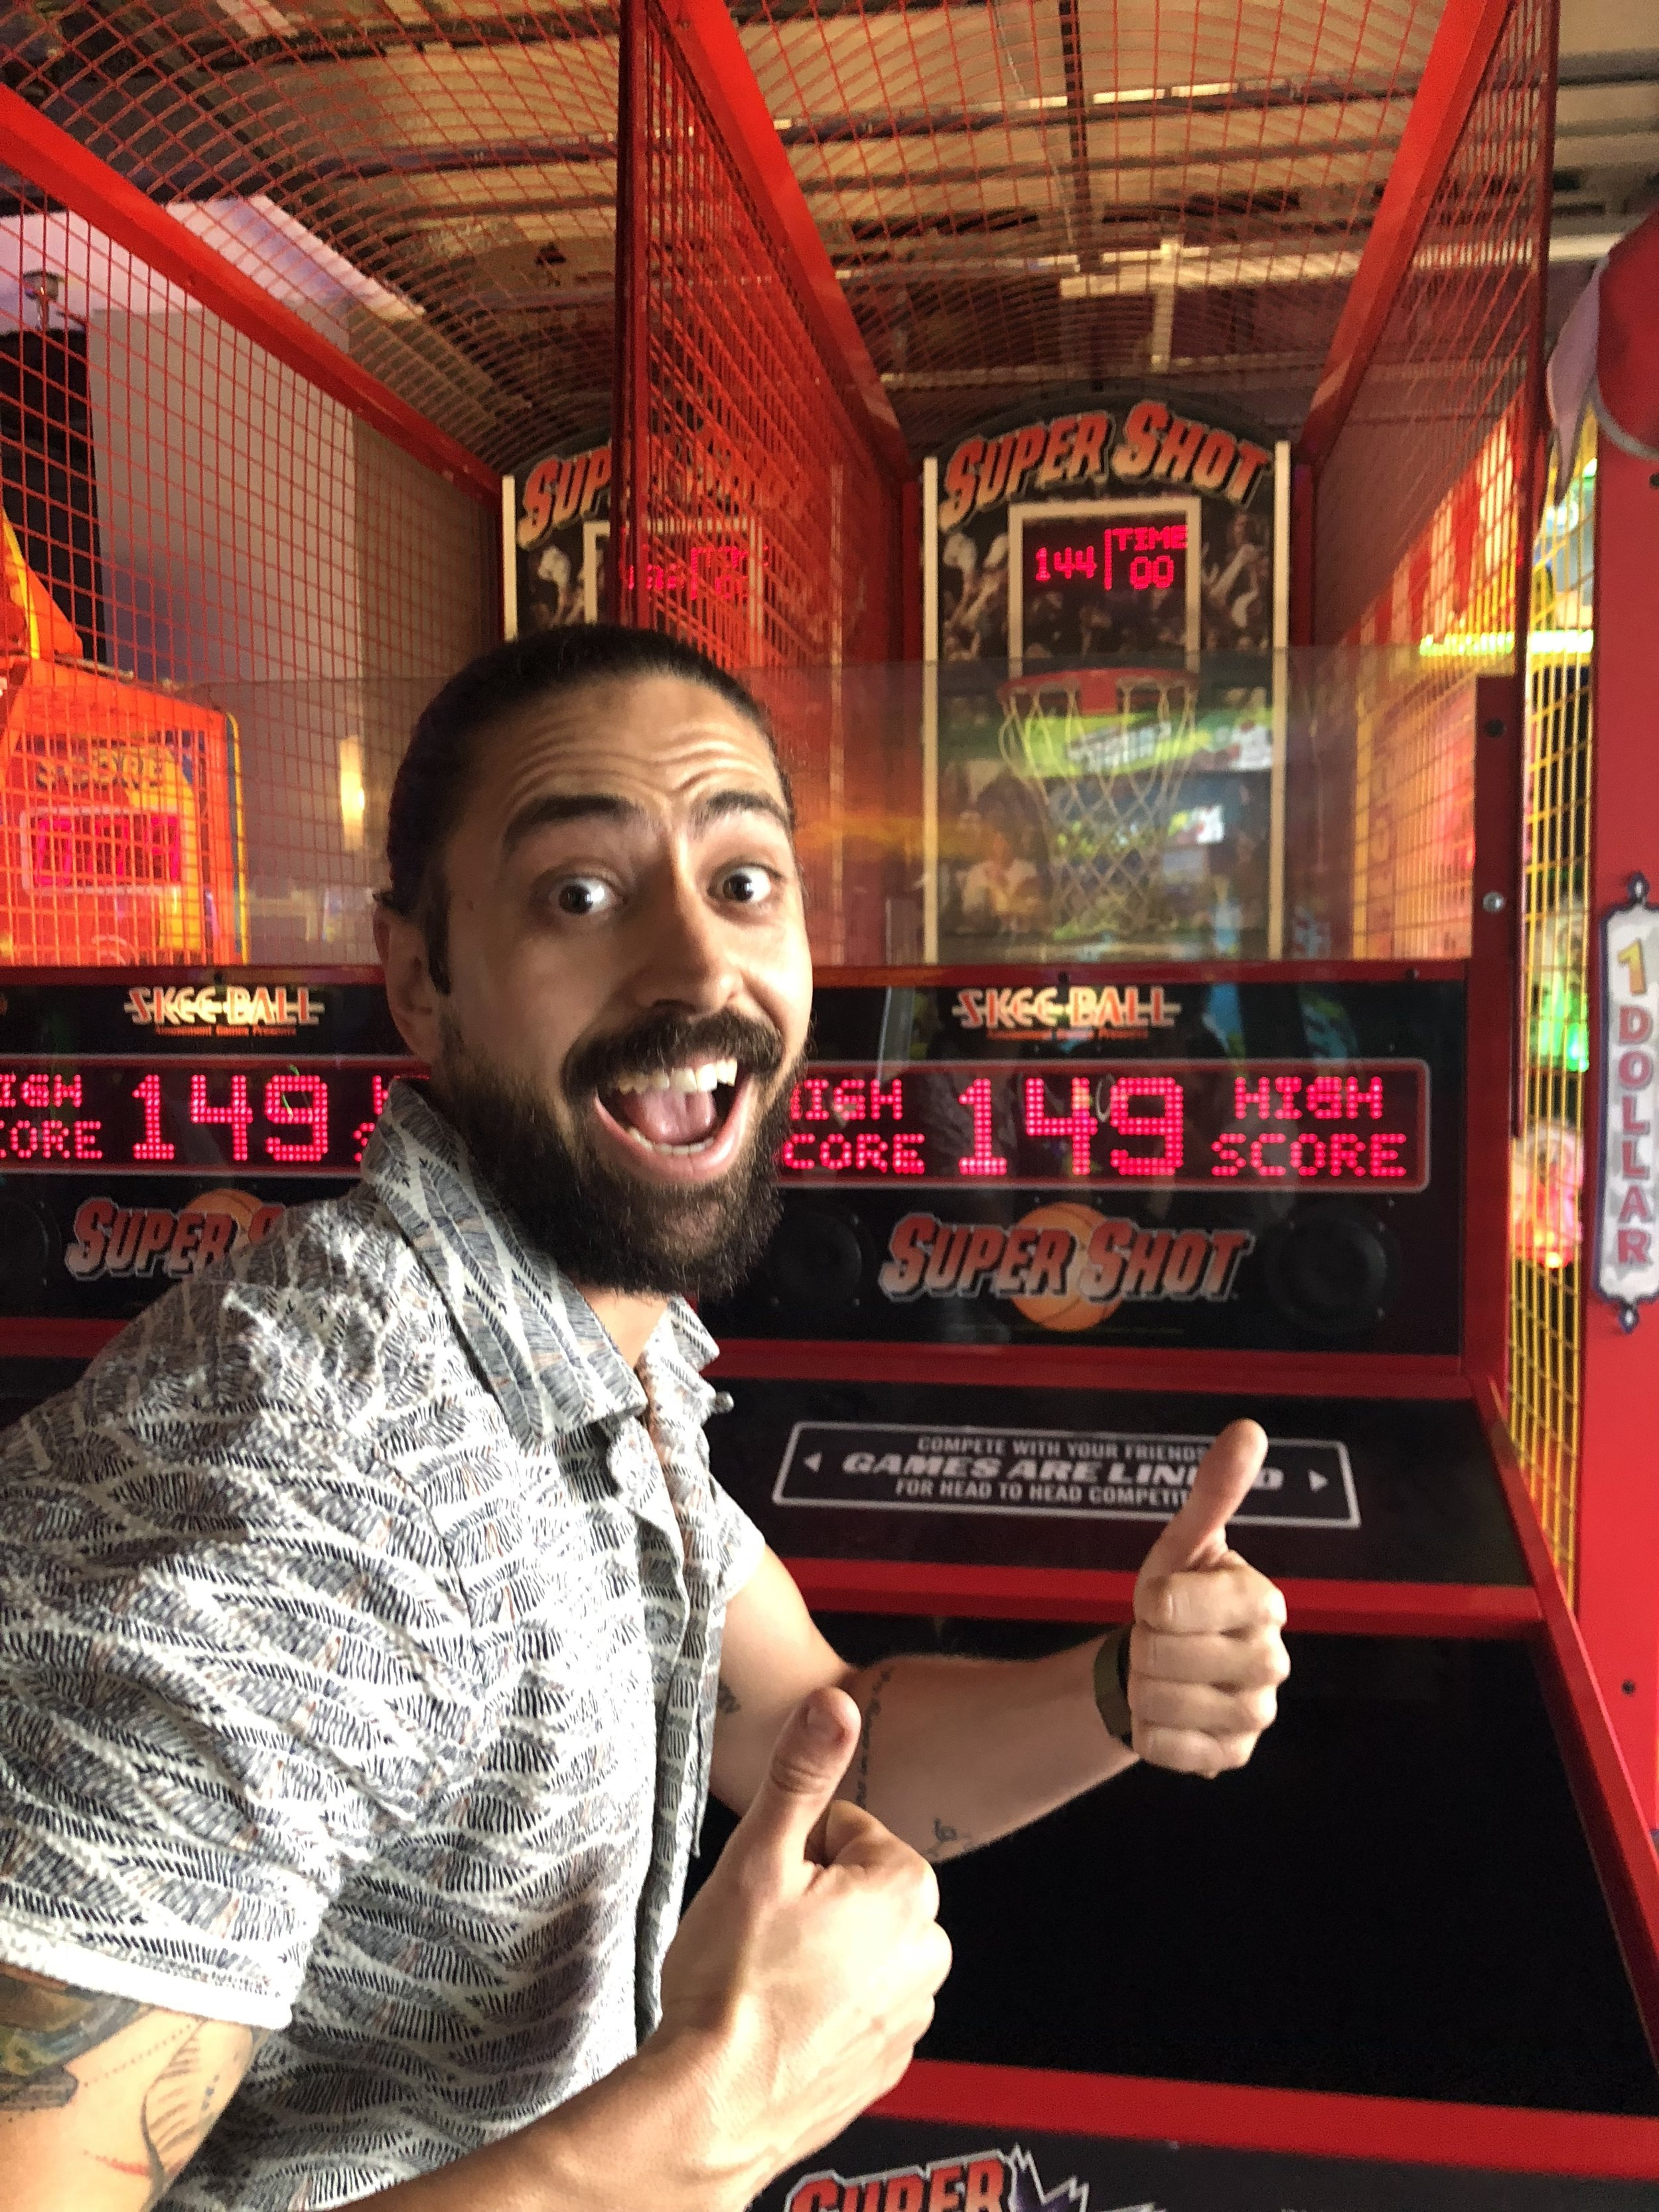 Zac Catanzaro, Super Shot High Score Winner, Drummer, Bearded Man